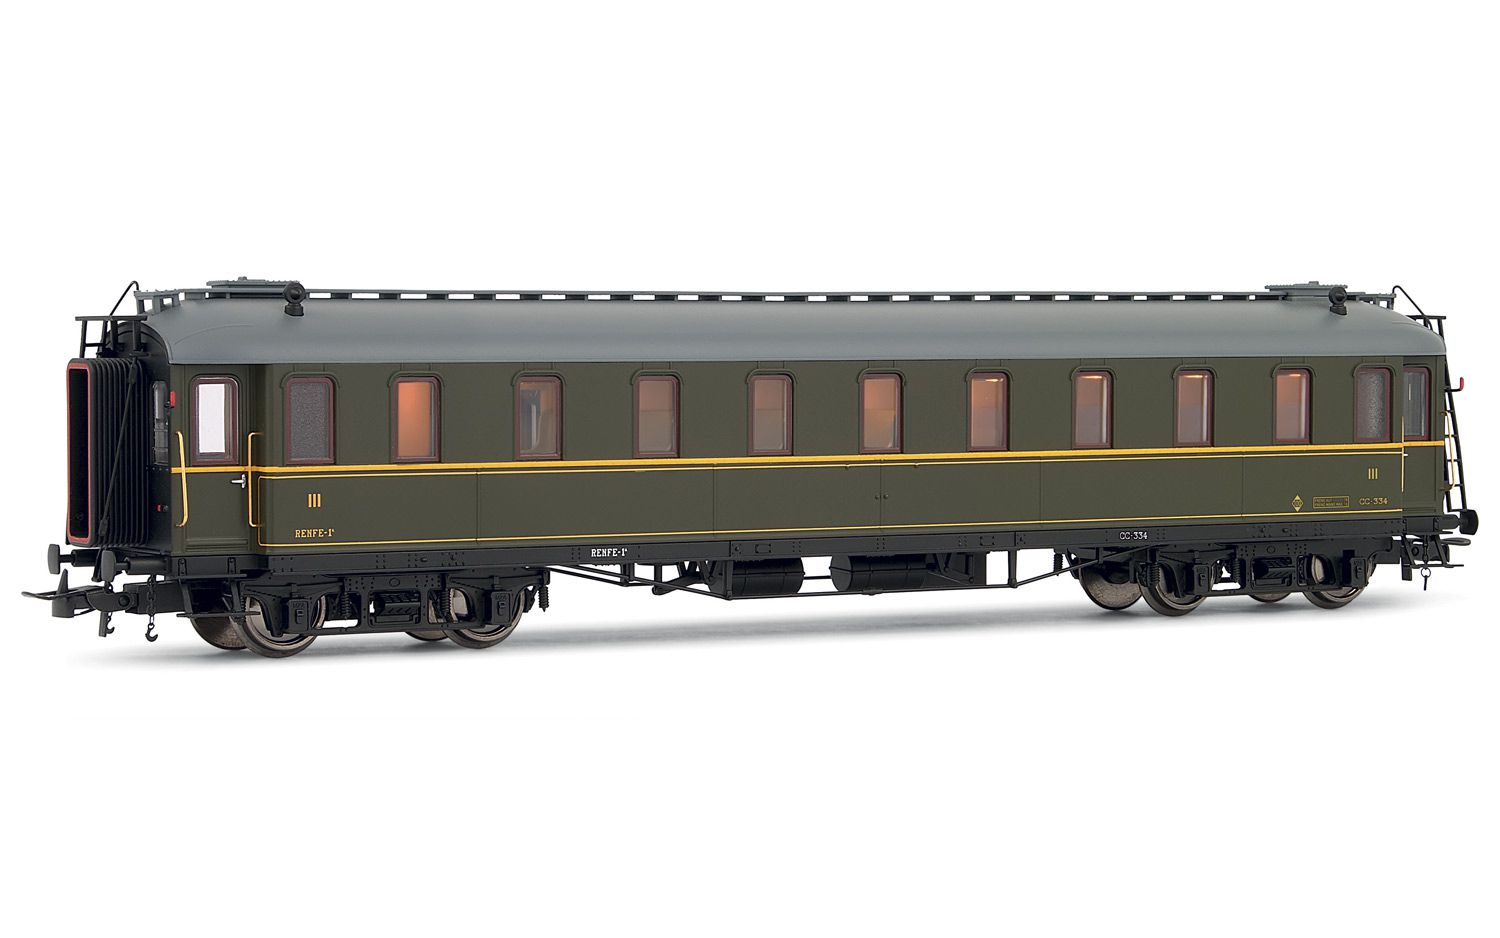 Picture Gallery for Electrotren E15016 3rd class coach, RENFE - CC 334